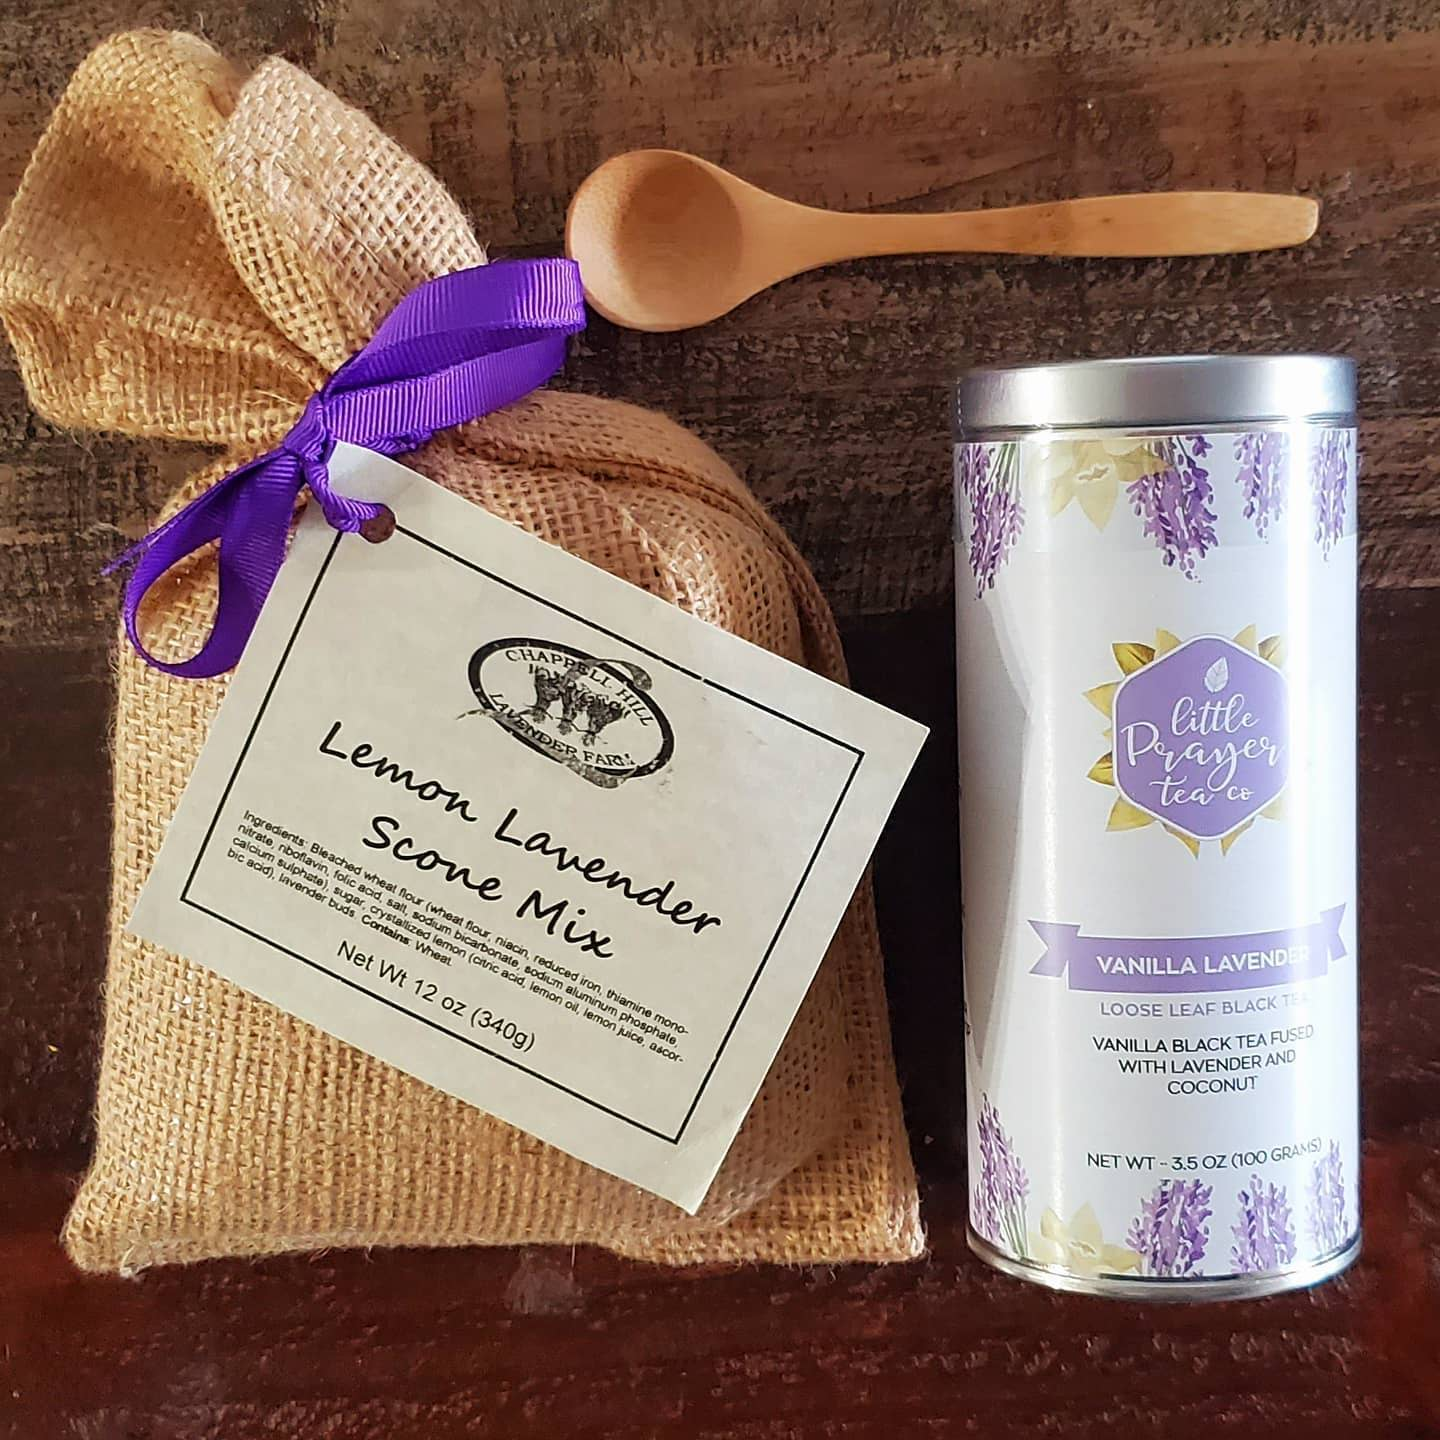 The Lavender Duo gift box includes a lovely and scrumptious lavender pair. Perfect gift for anniversaries, birthdays, clients and so many more life's celebrations. Or just because or just for you! Visit us at www.coolbeansbox.com♡ .